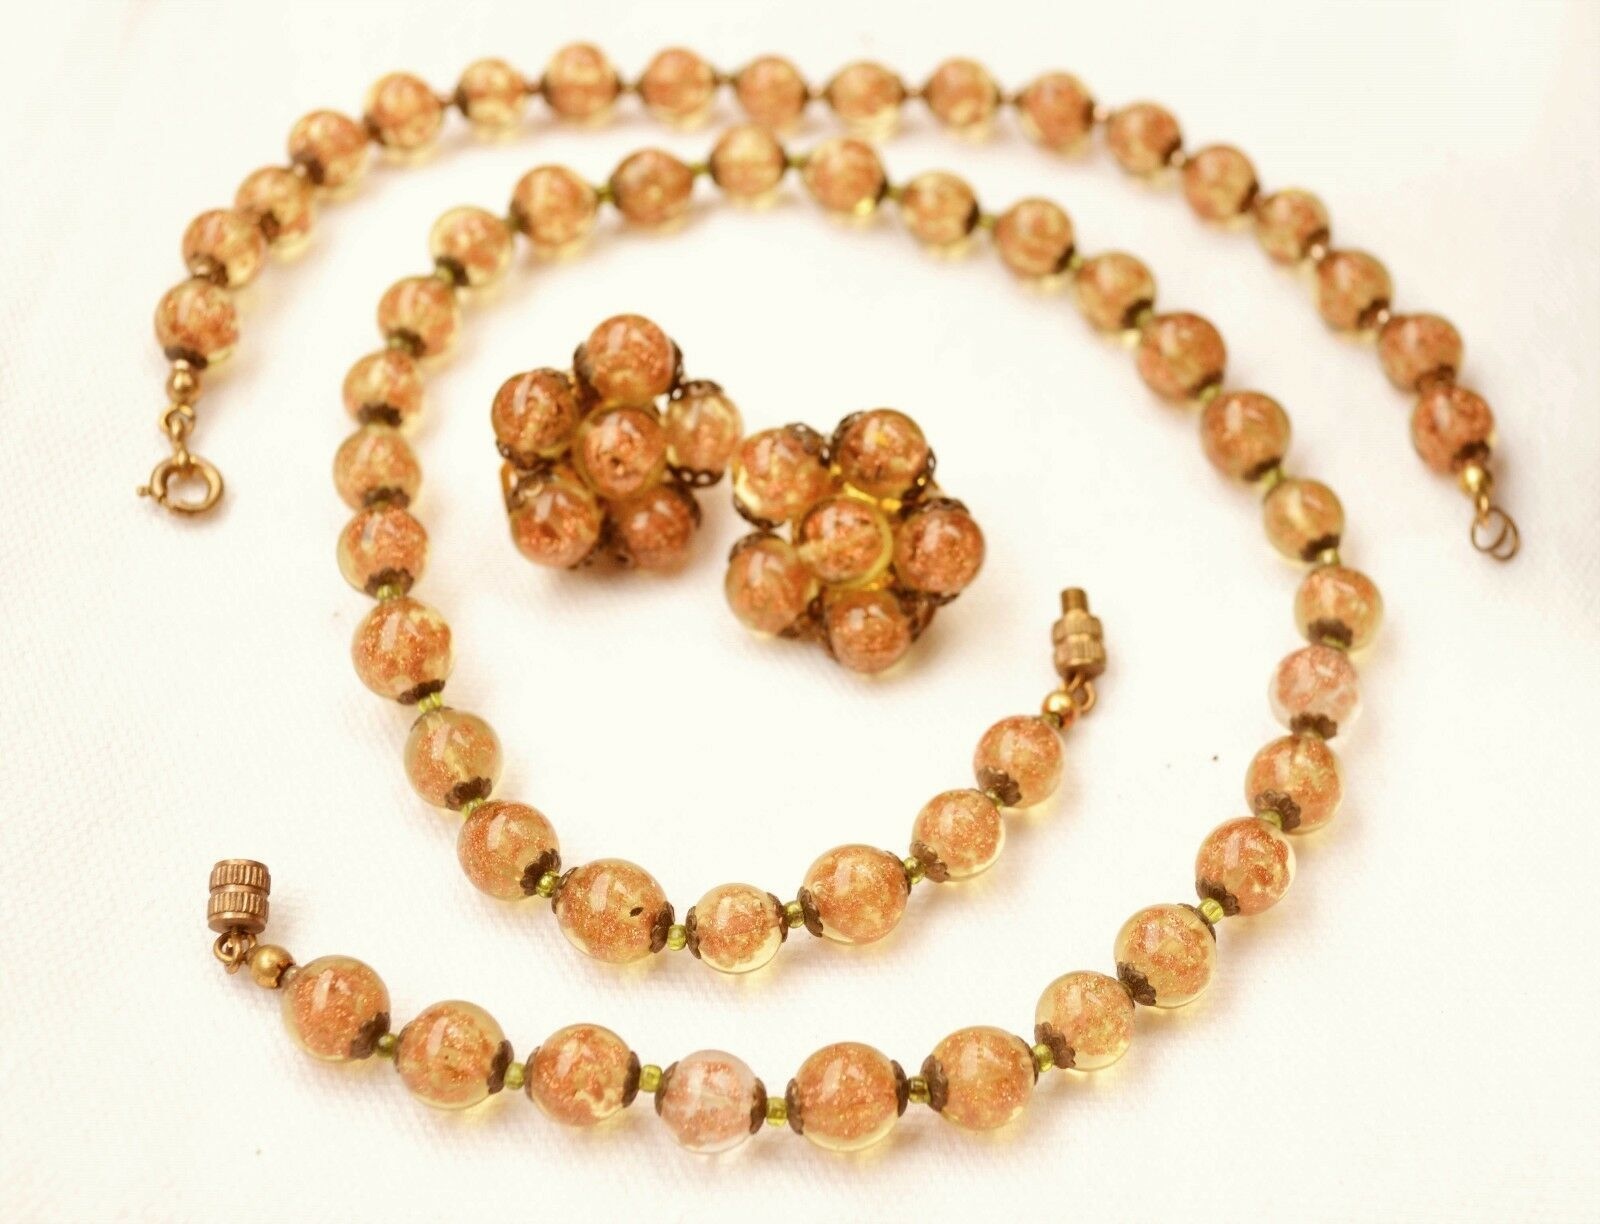 Vintage/atq golden Murano aventurine glass bead demi: necklace/bracelet/earrings